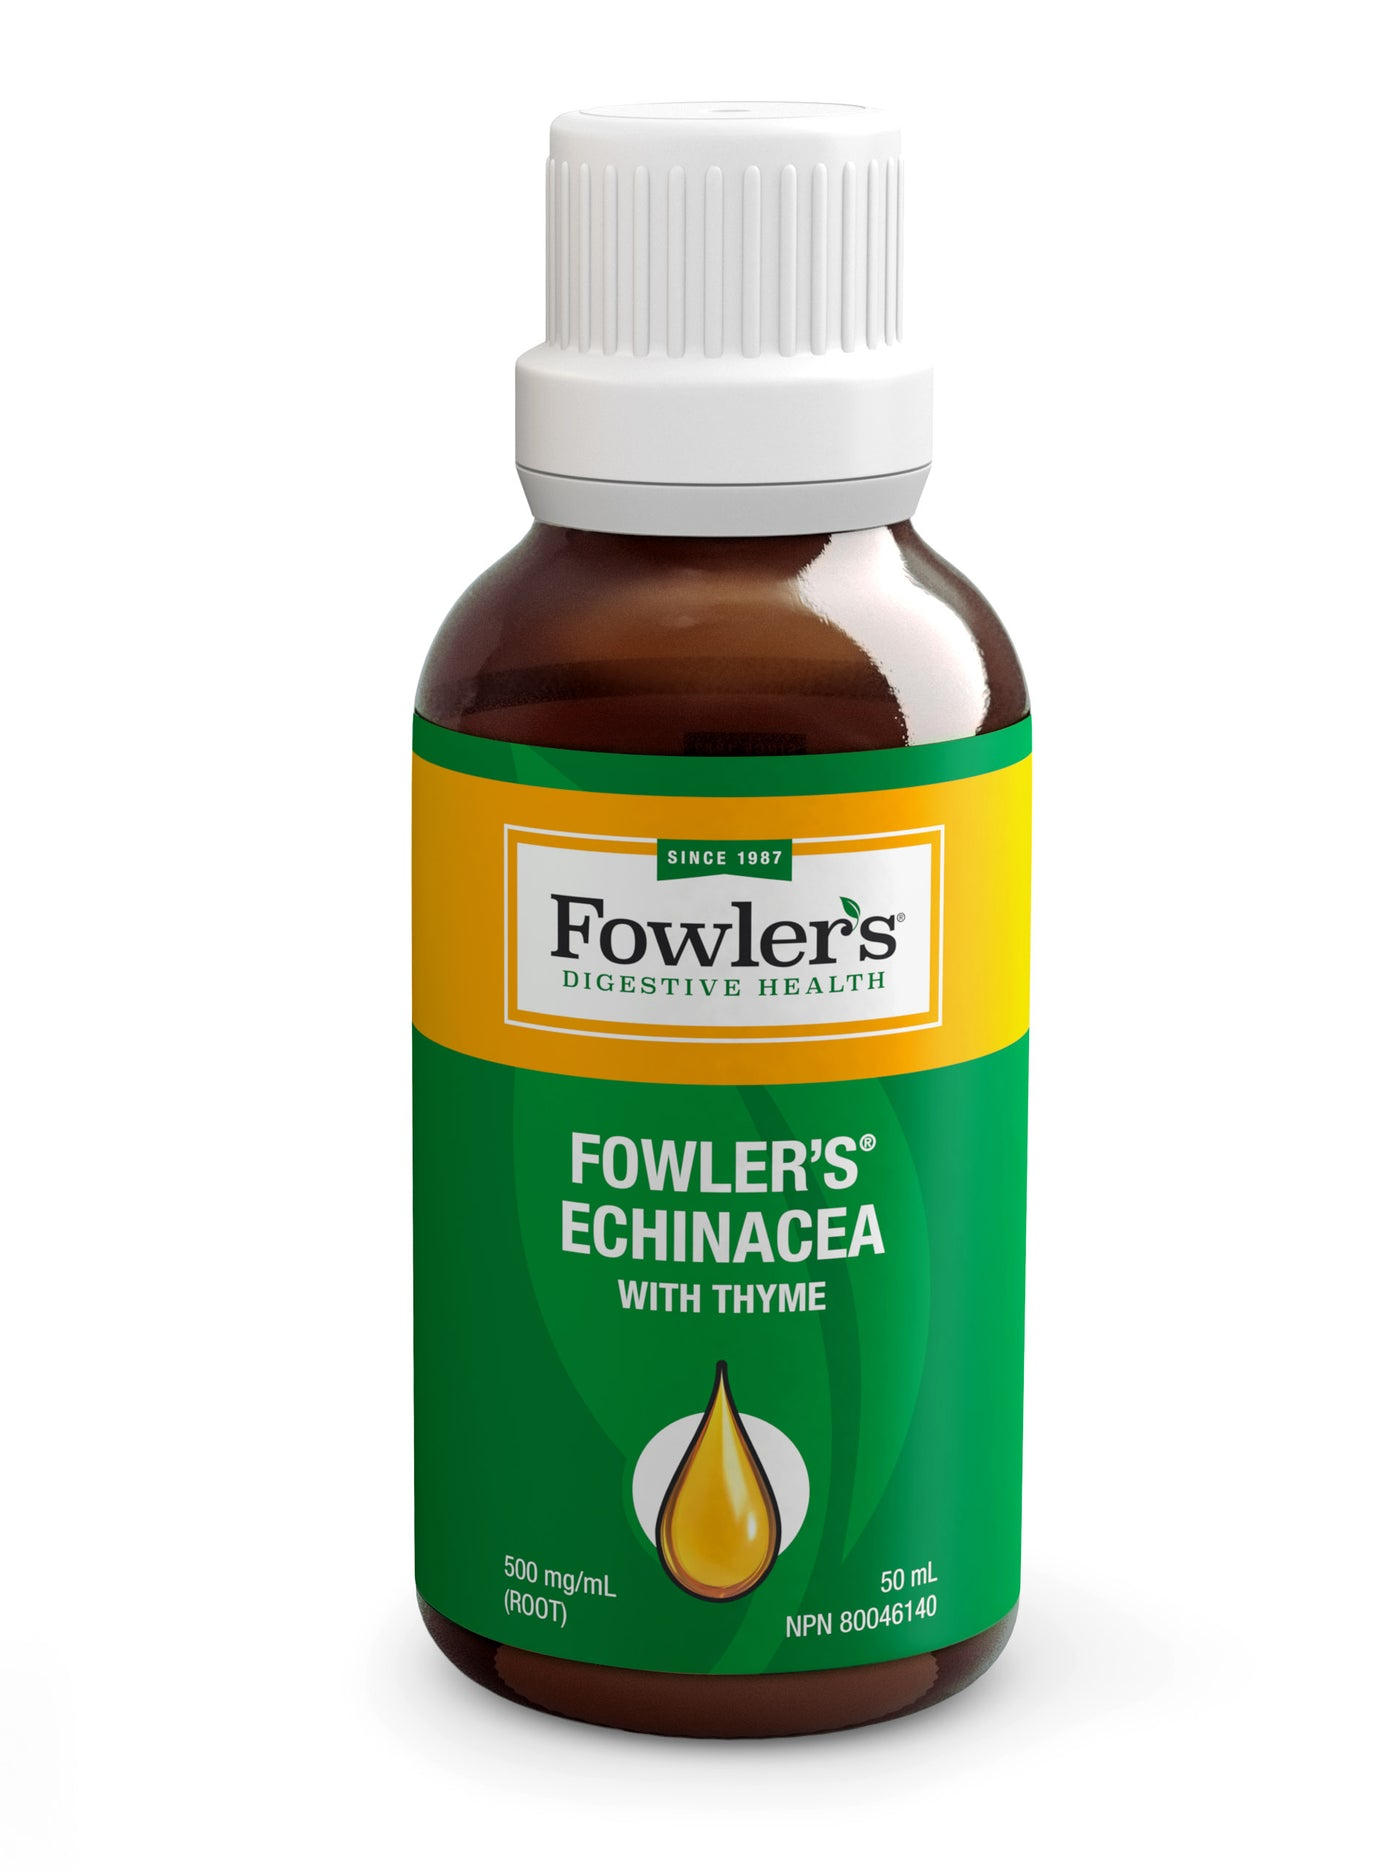 Fowler's Echinacea with Thyme (Extra-Strength 500 mg/mL)